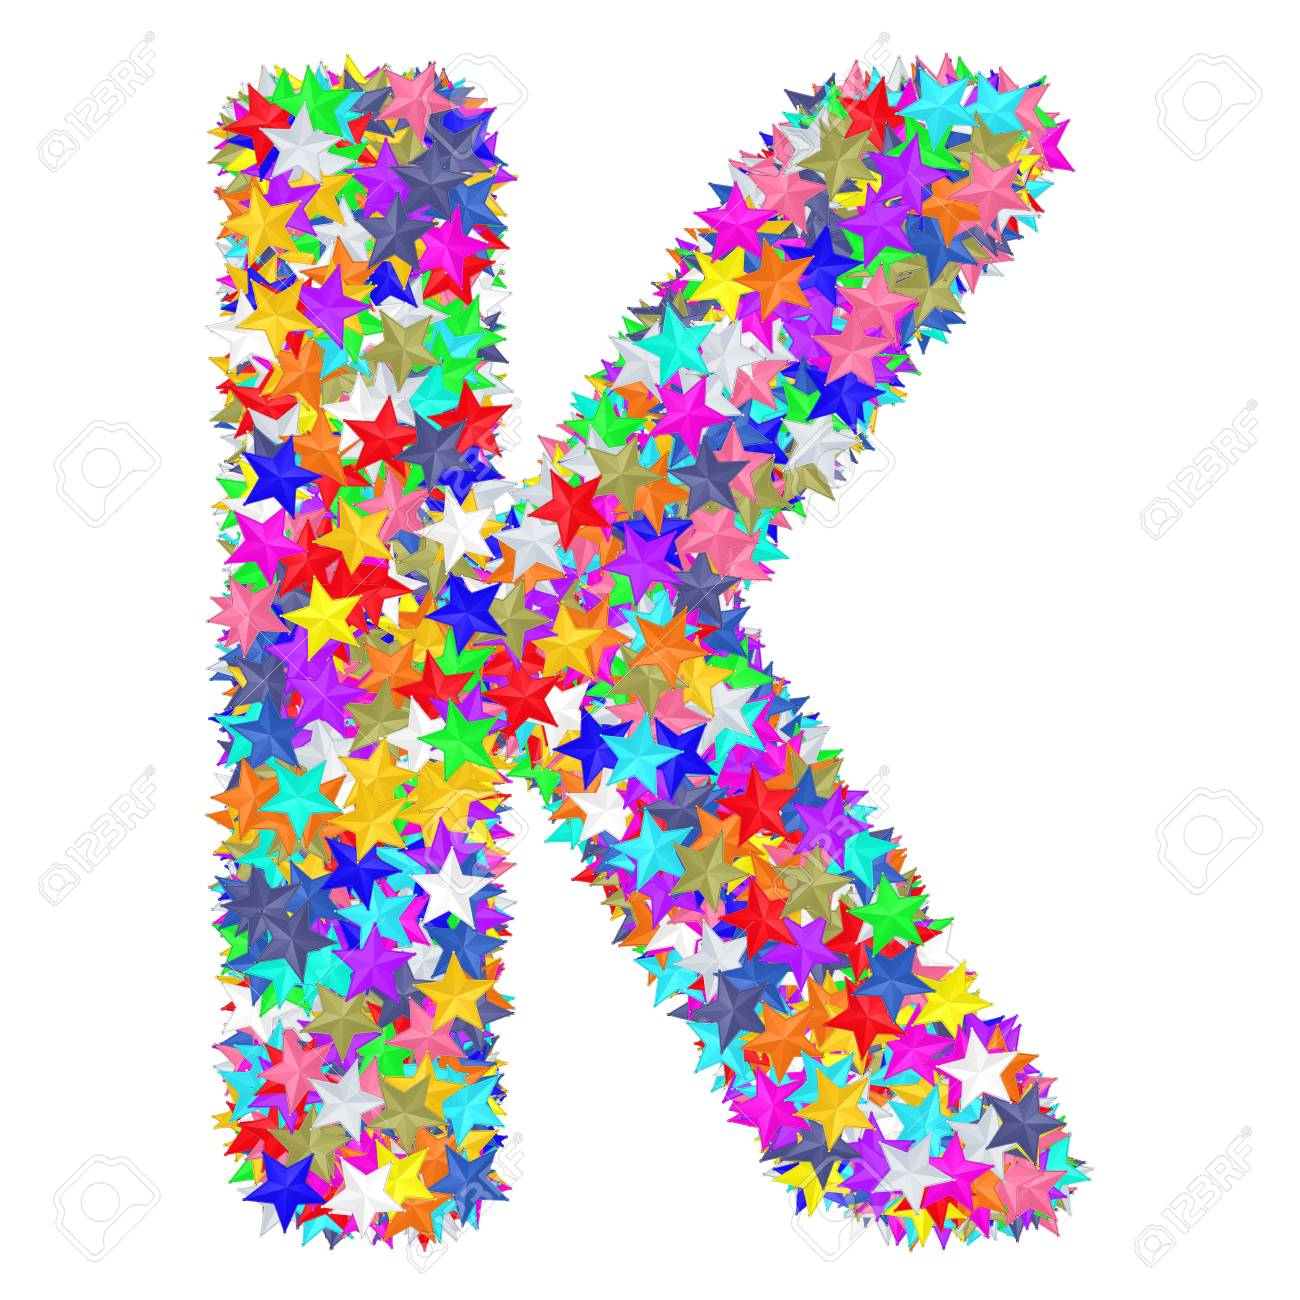 Alphabet Symbol Letter K Composed Of Colorful Stars Isolated Stock Photo Picture And Royalty Free Image Image 100347968